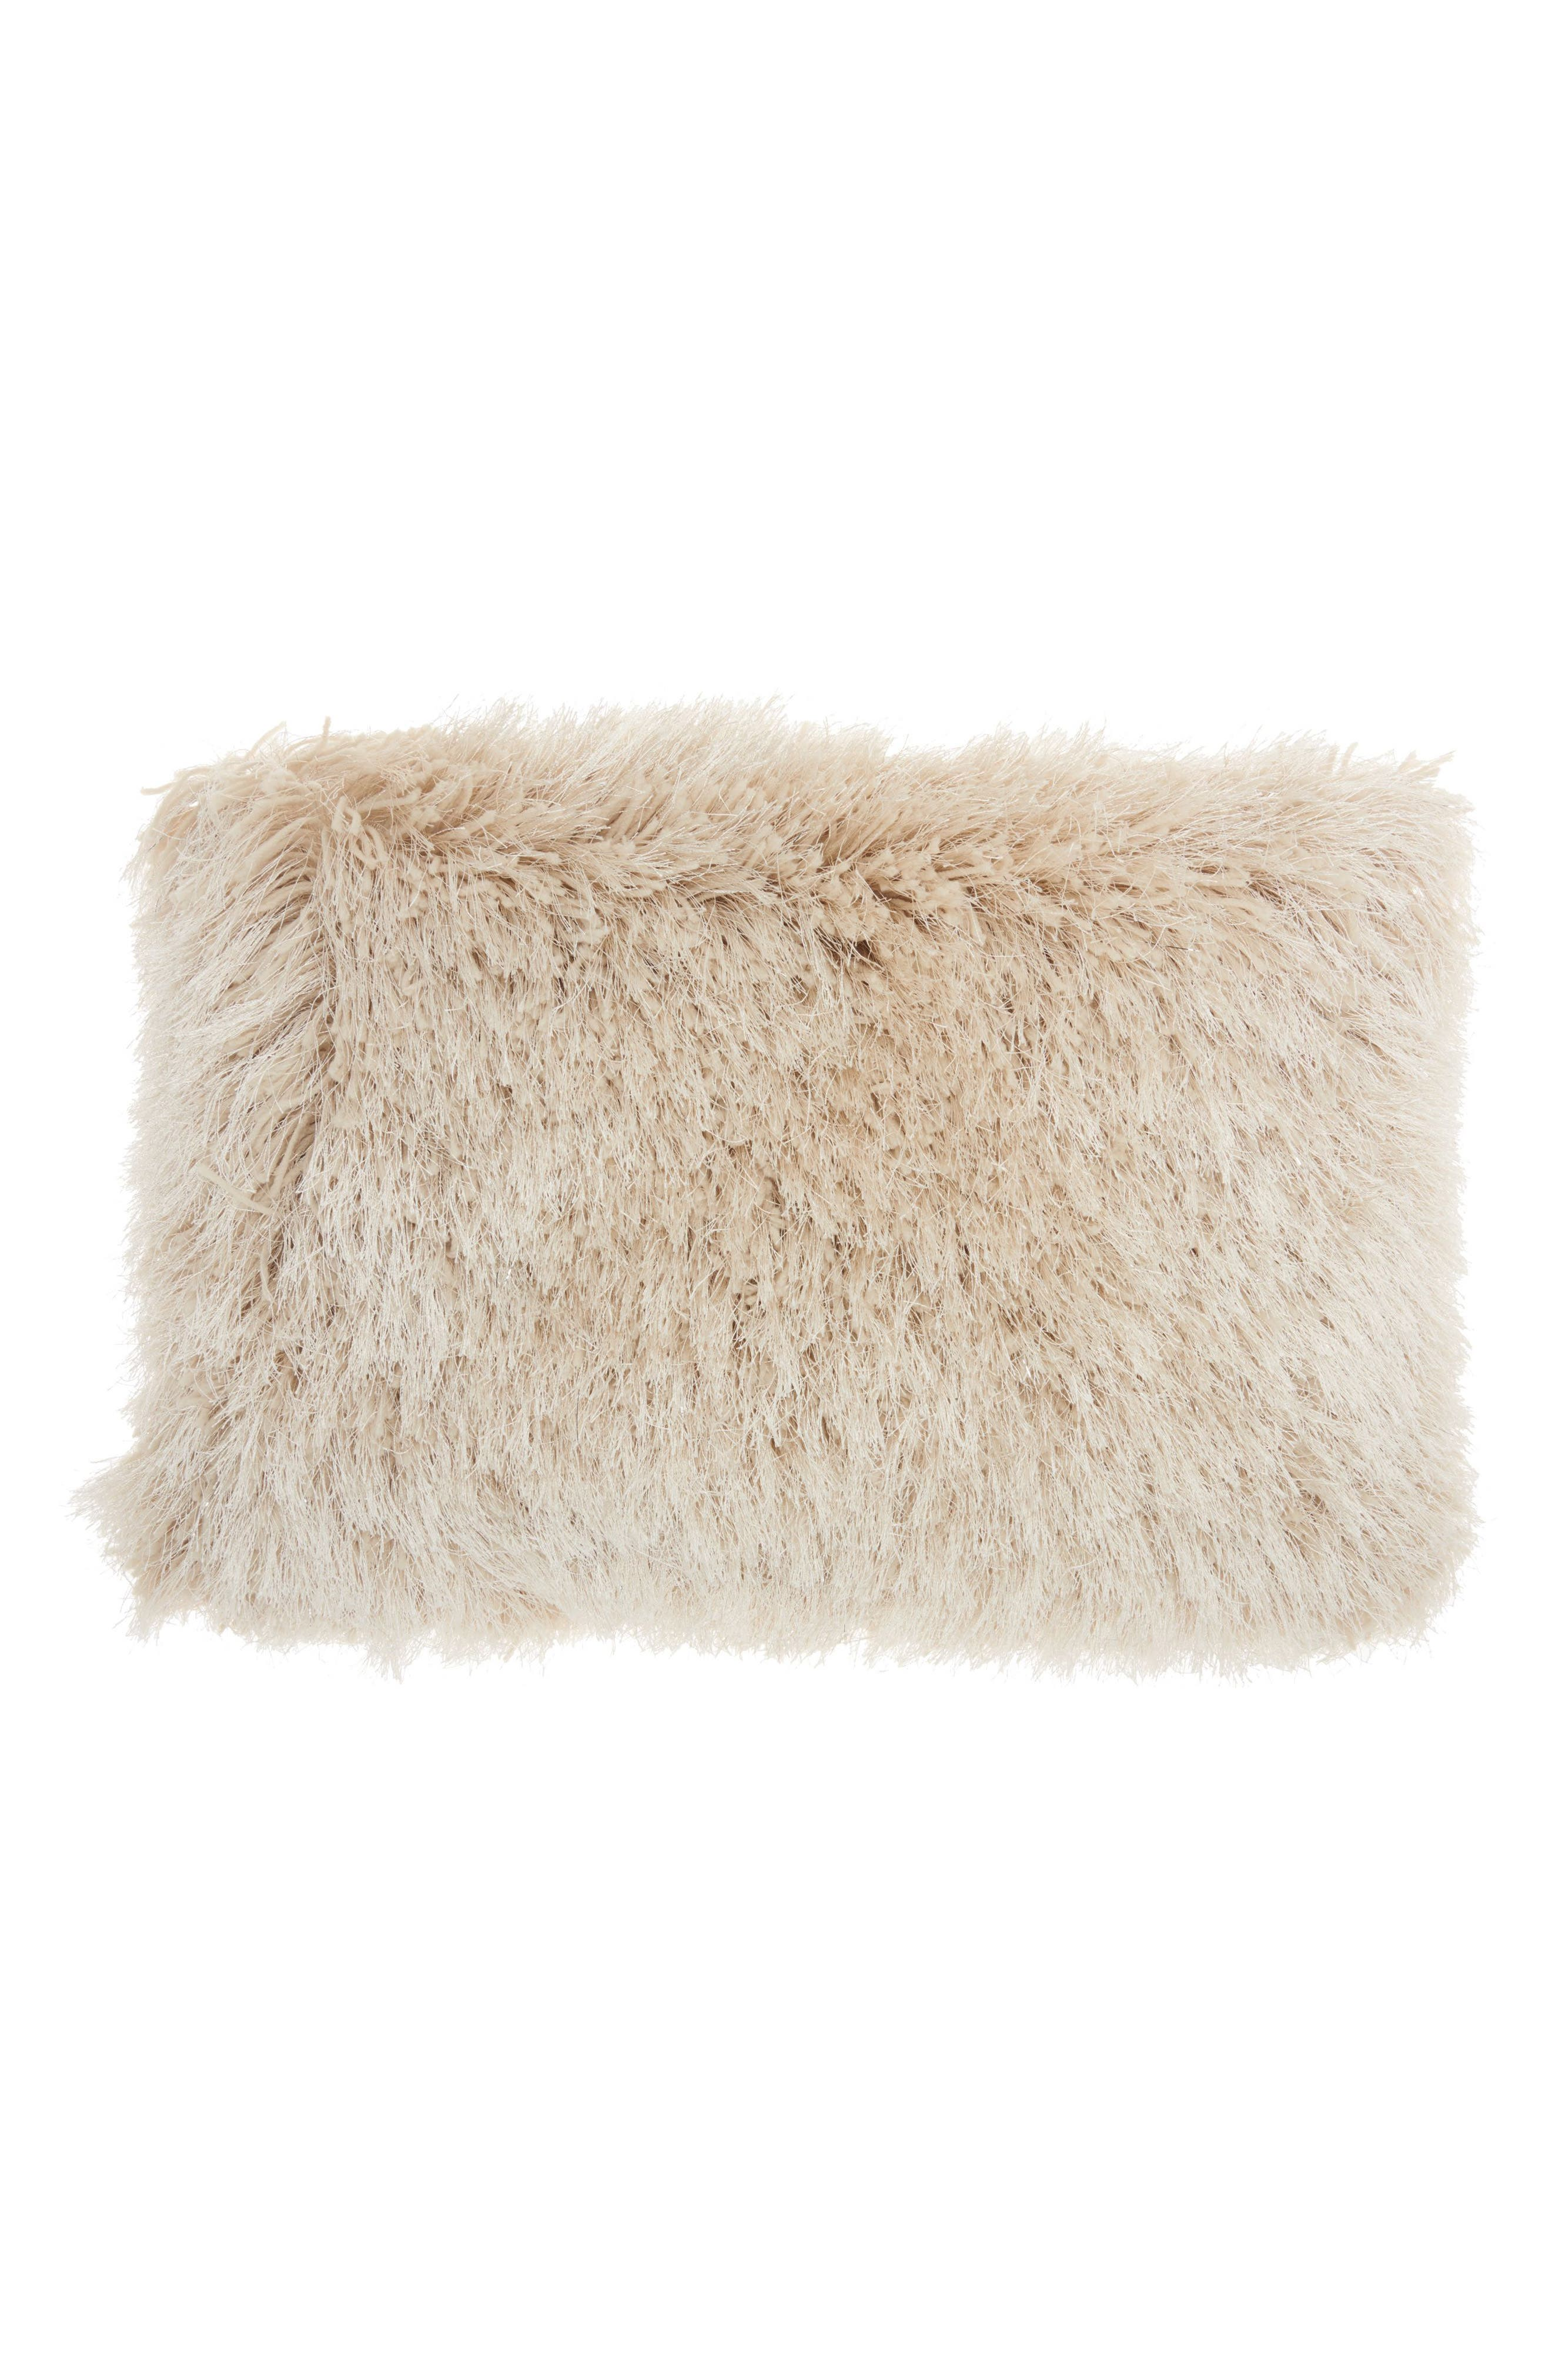 Alternate Image 1 Selected - Mina Victory Shimmer Faux Fur Pillow